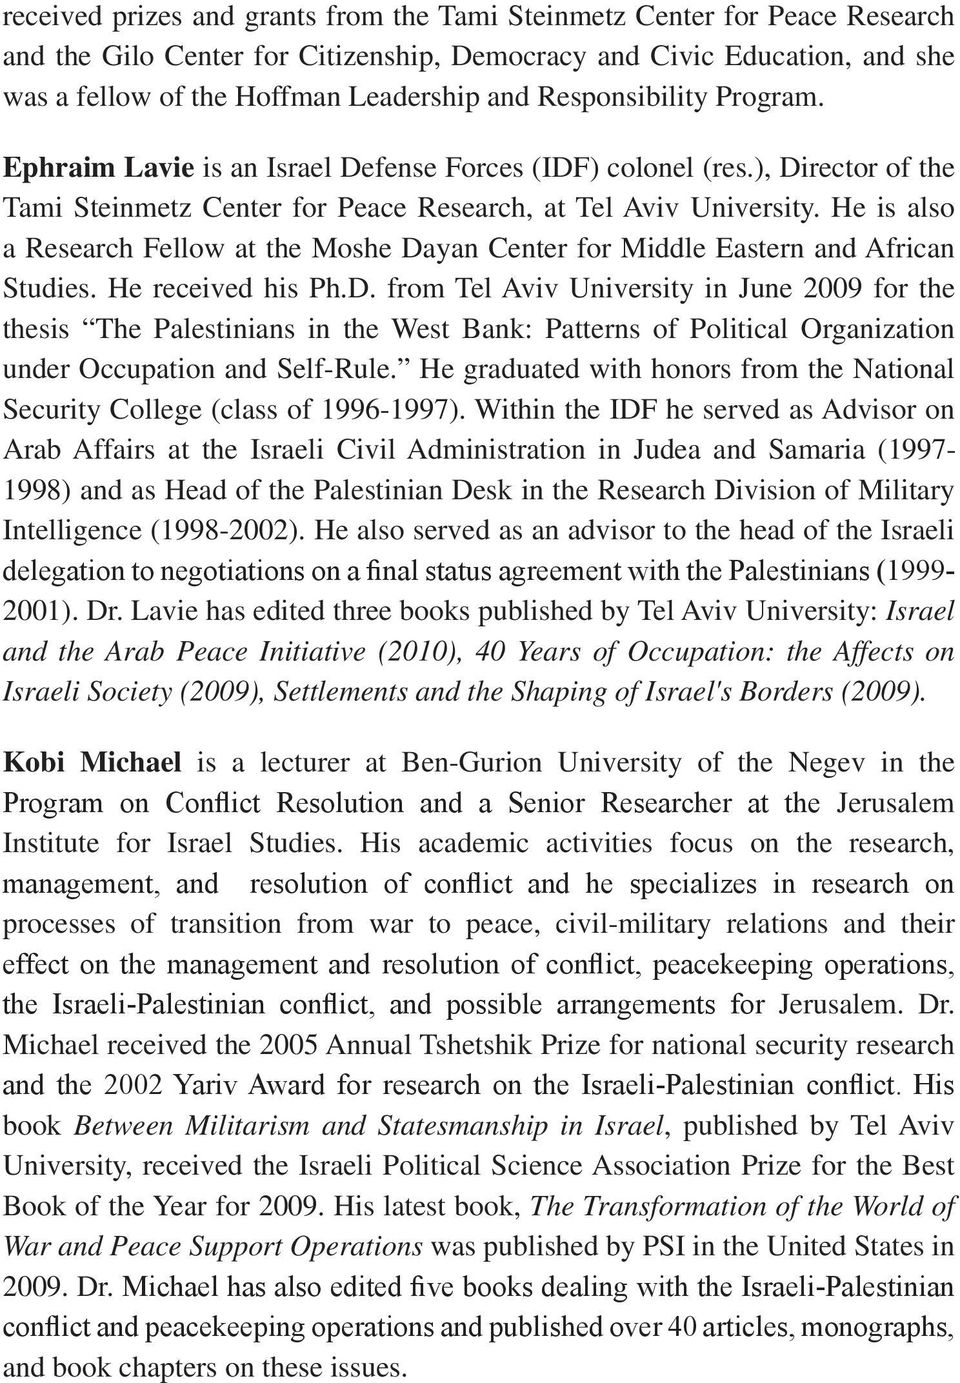 He is also a Research Fellow at the Moshe Dayan Center for Middle Eastern and African Studies. He received his Ph.D. from Tel Aviv University in June 2009 for the thesis The Palestinians in the West Bank: Patterns of Political Organization under Occupation and Self-Rule.